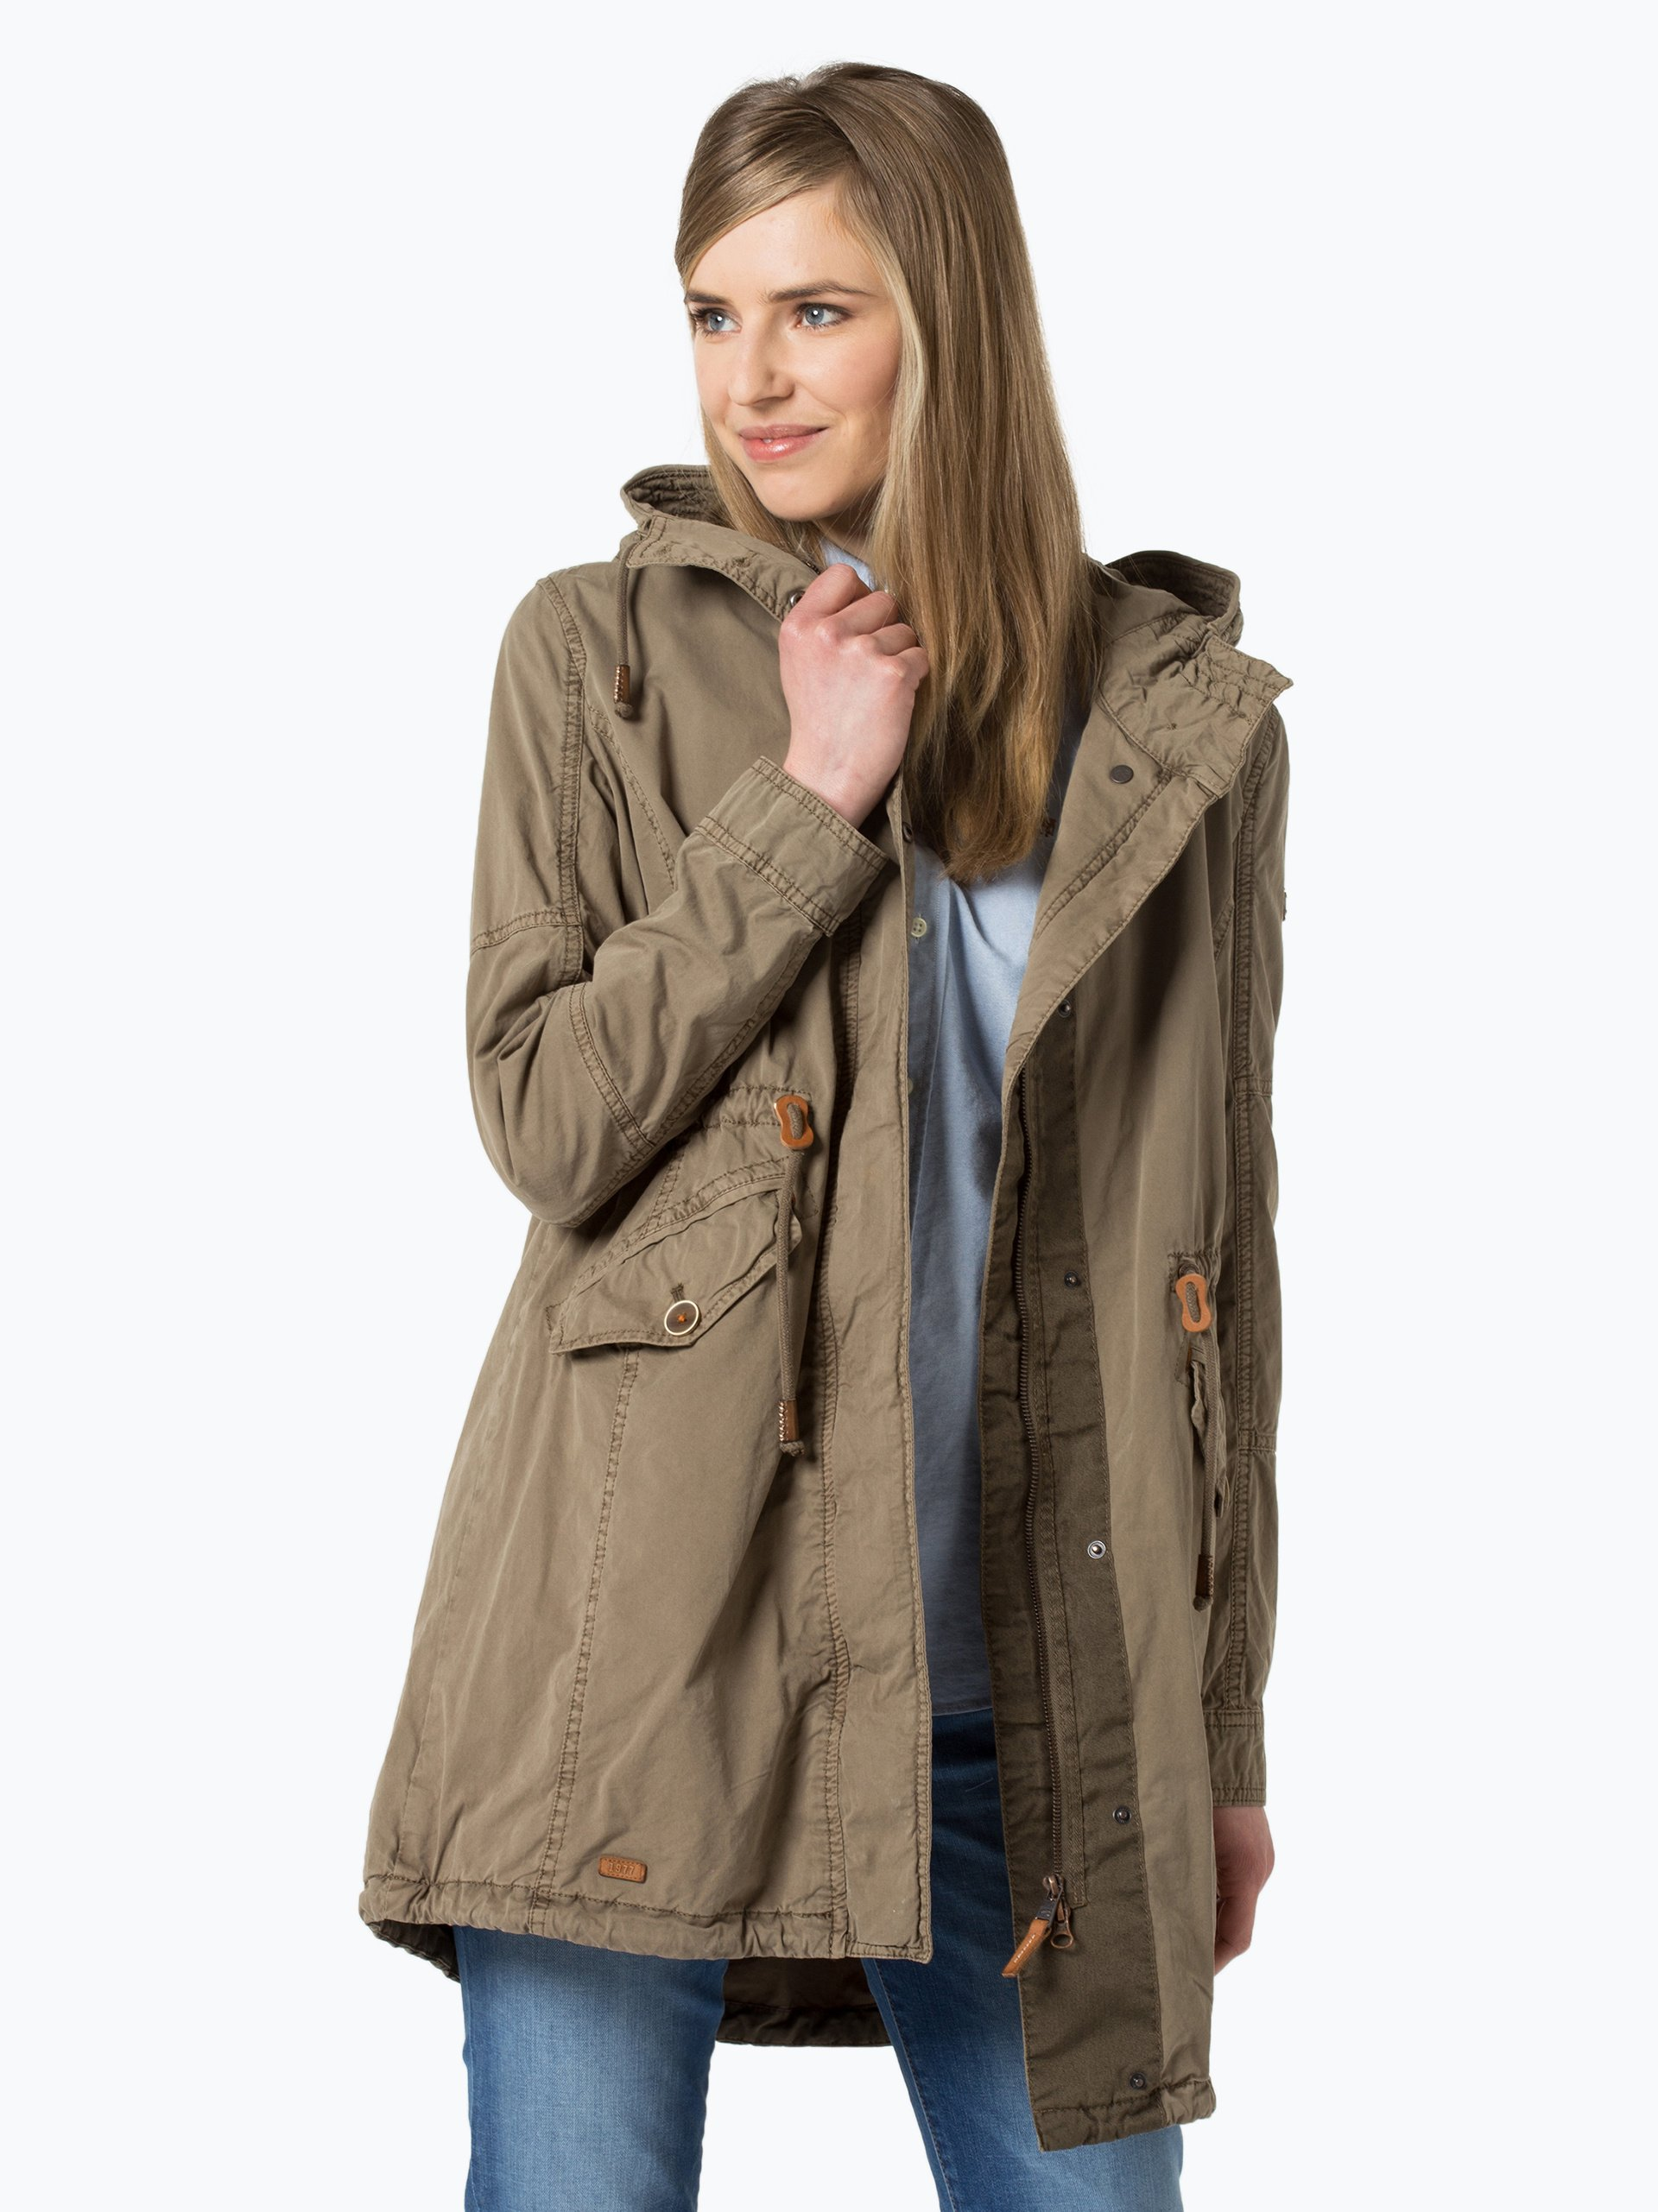 camel active damen parka gr n uni online kaufen peek und cloppenburg de. Black Bedroom Furniture Sets. Home Design Ideas